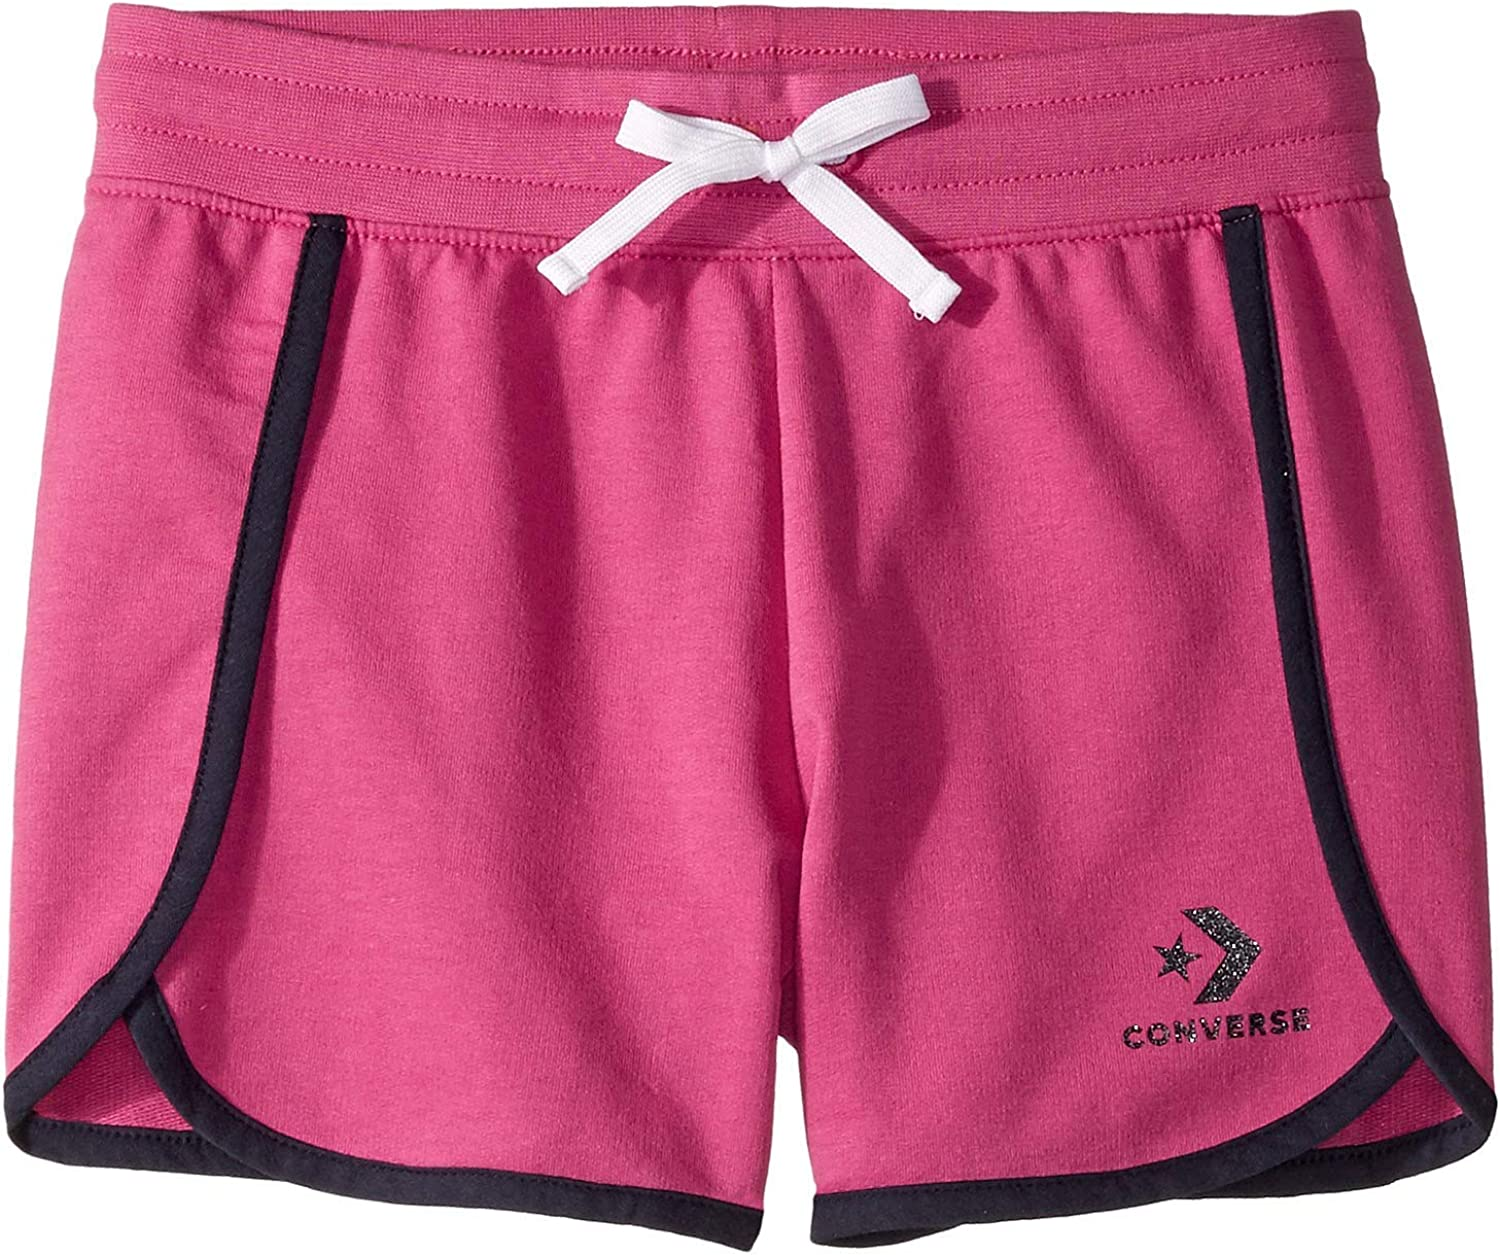 Converse Kids Girl's Star Chevron Track Sale special price Shorts Big All items in the store